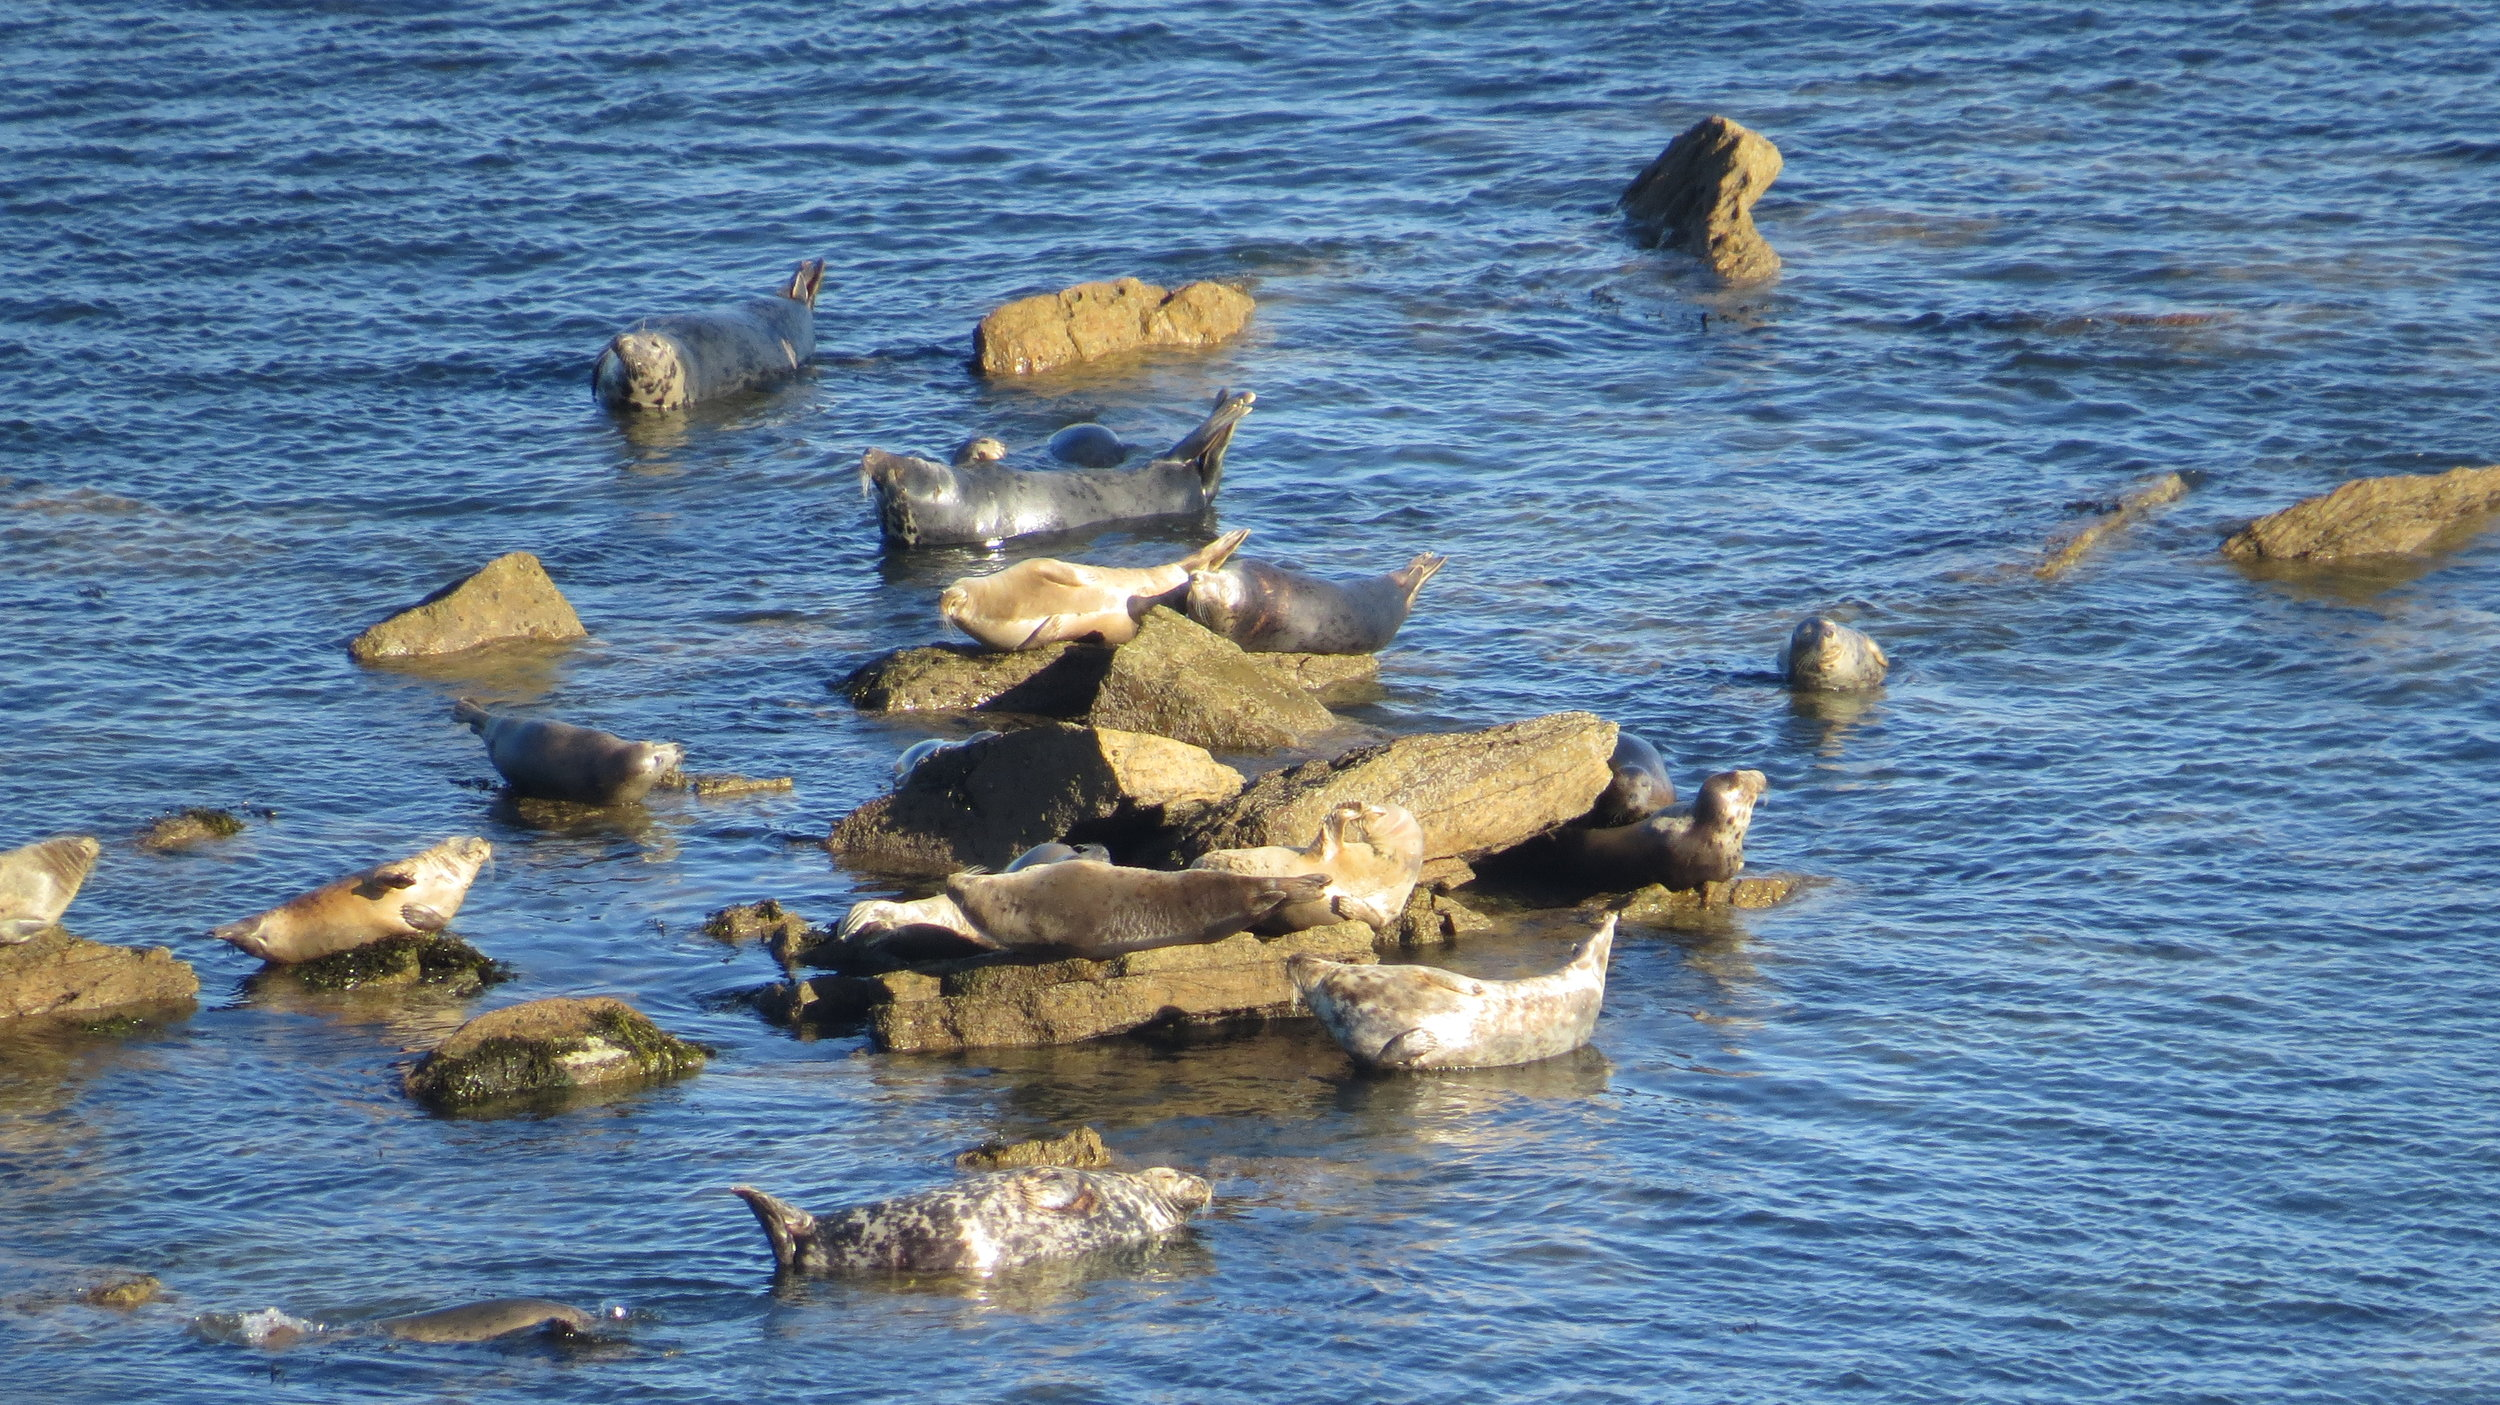 Seals Basking in the Sun